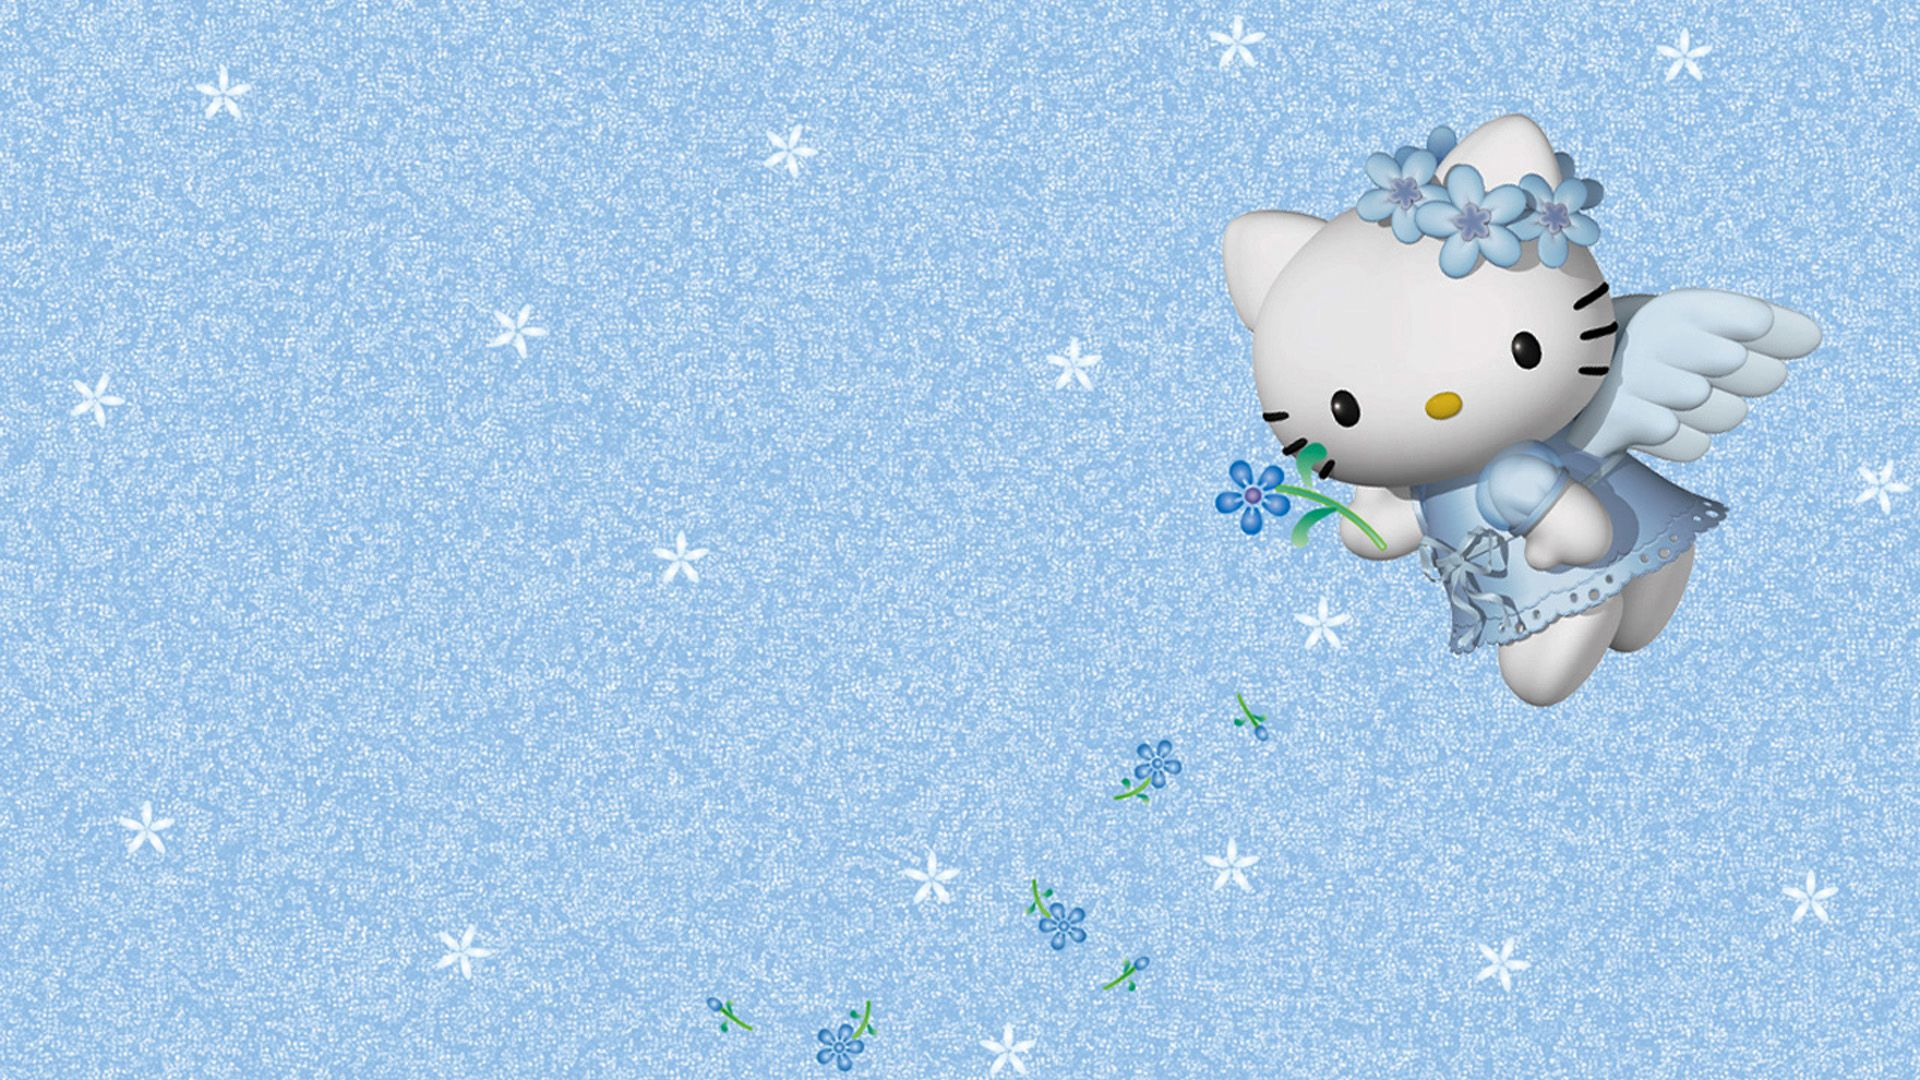 Beautiful Wallpaper Hello Kitty 1080p - cc8c75b3d2b2f8f45ca29e6b5da2beb8  Pictures_268484.jpg